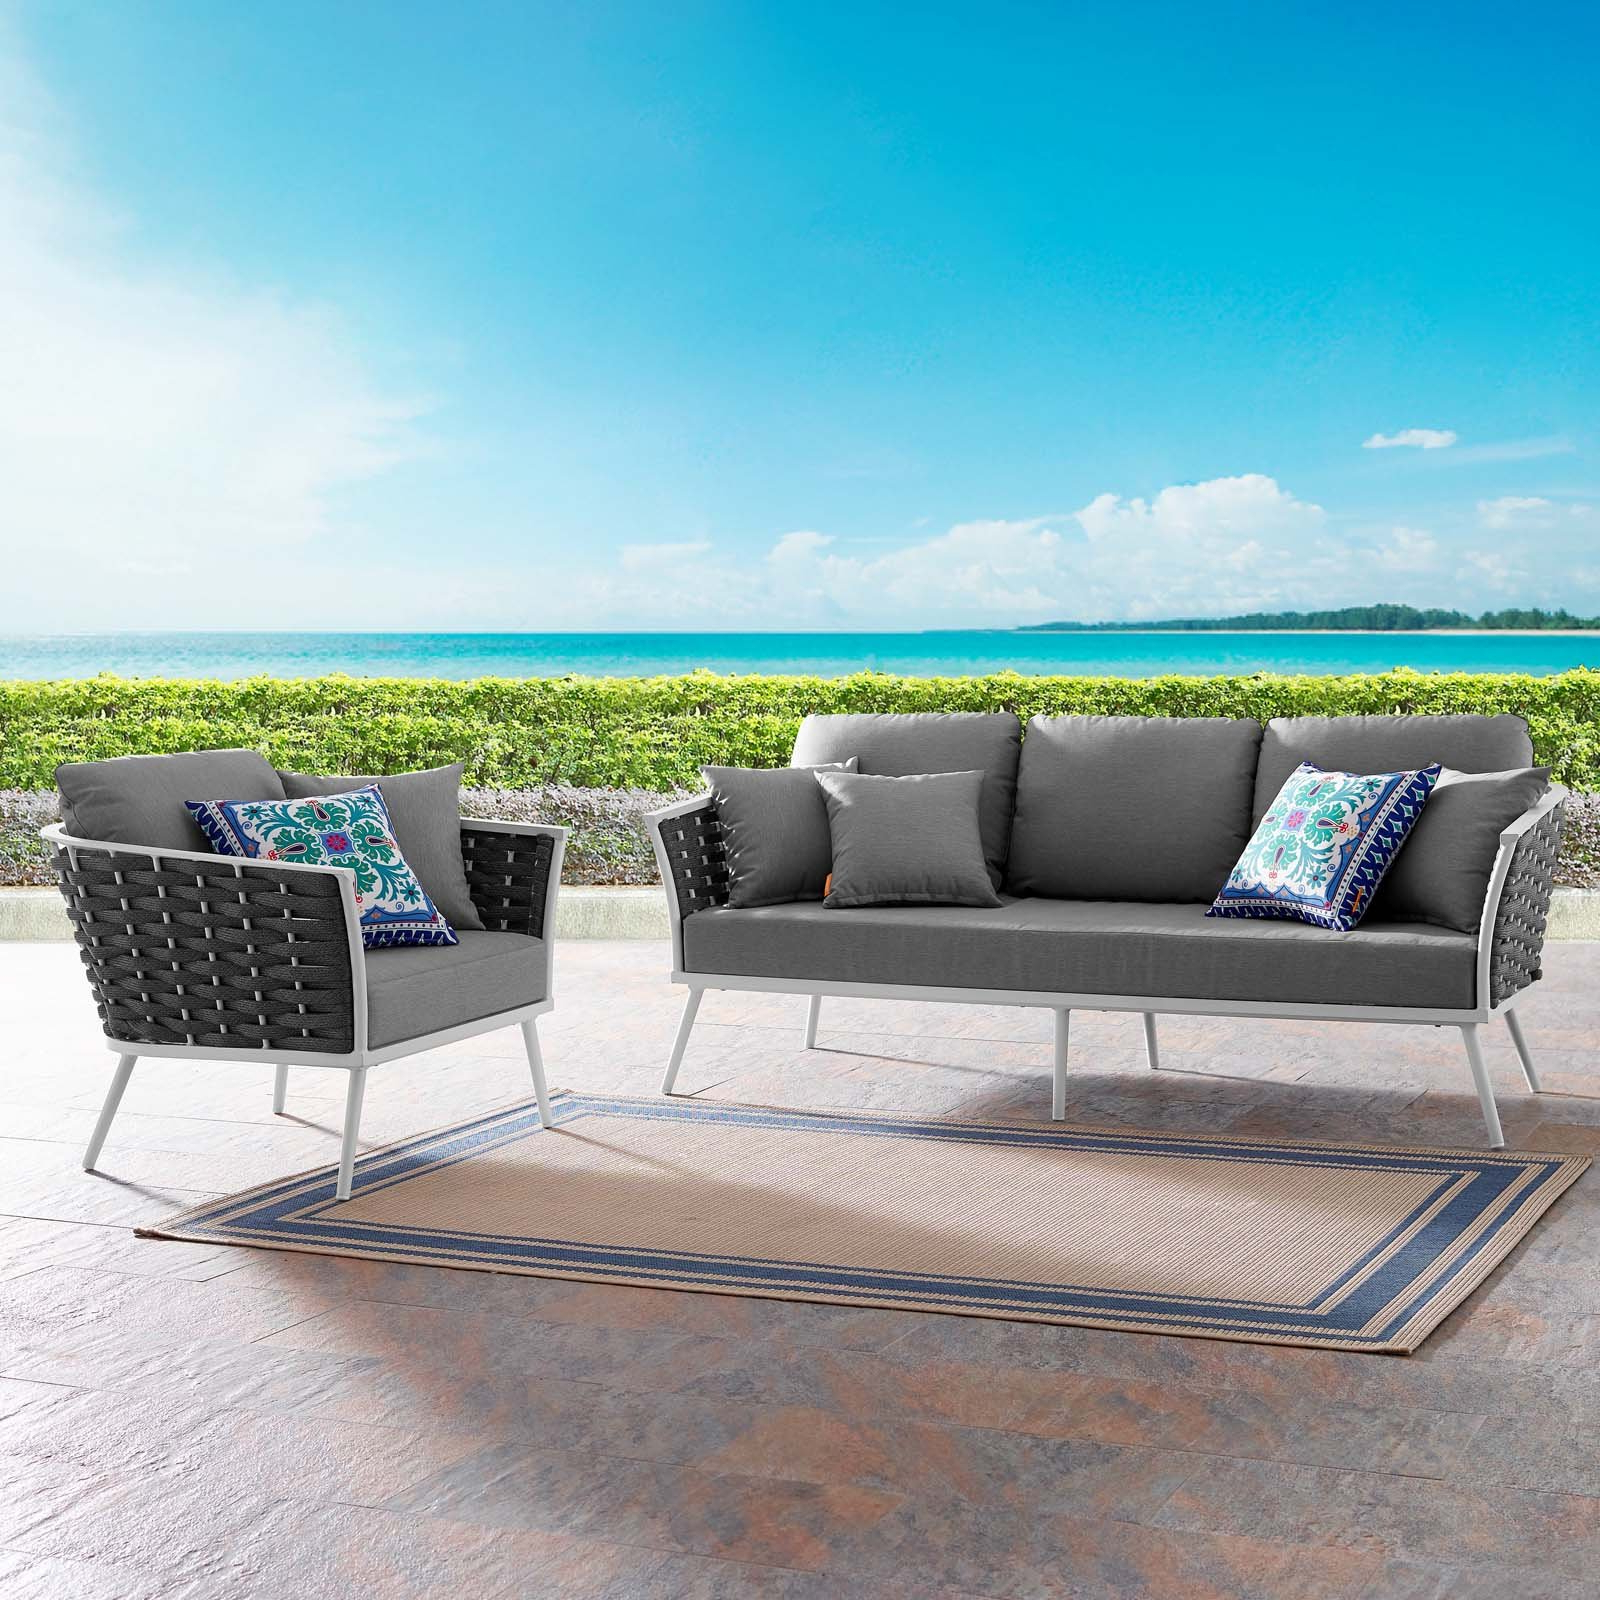 Most Recently Released Rossville Outdoor Patio Sofas With Cushions Regarding Marketonic 2 Piece Outdoor Patio Aluminum Sectional Sofa Set (View 3 of 25)